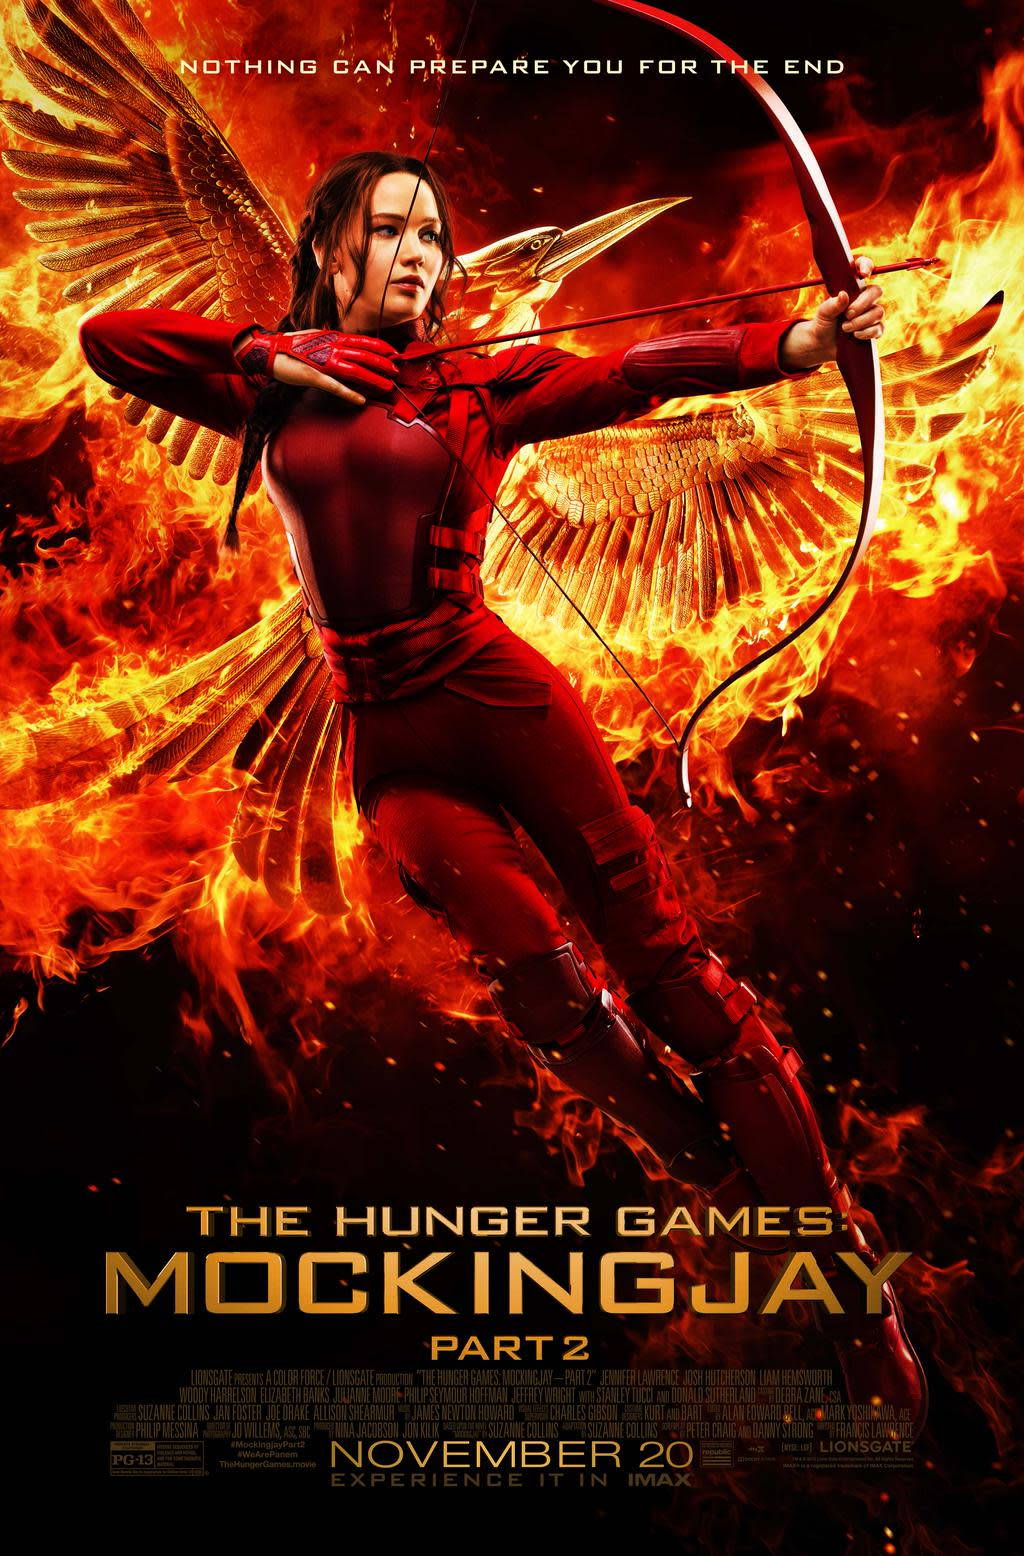 Final 'Hunger Games' again tops box office